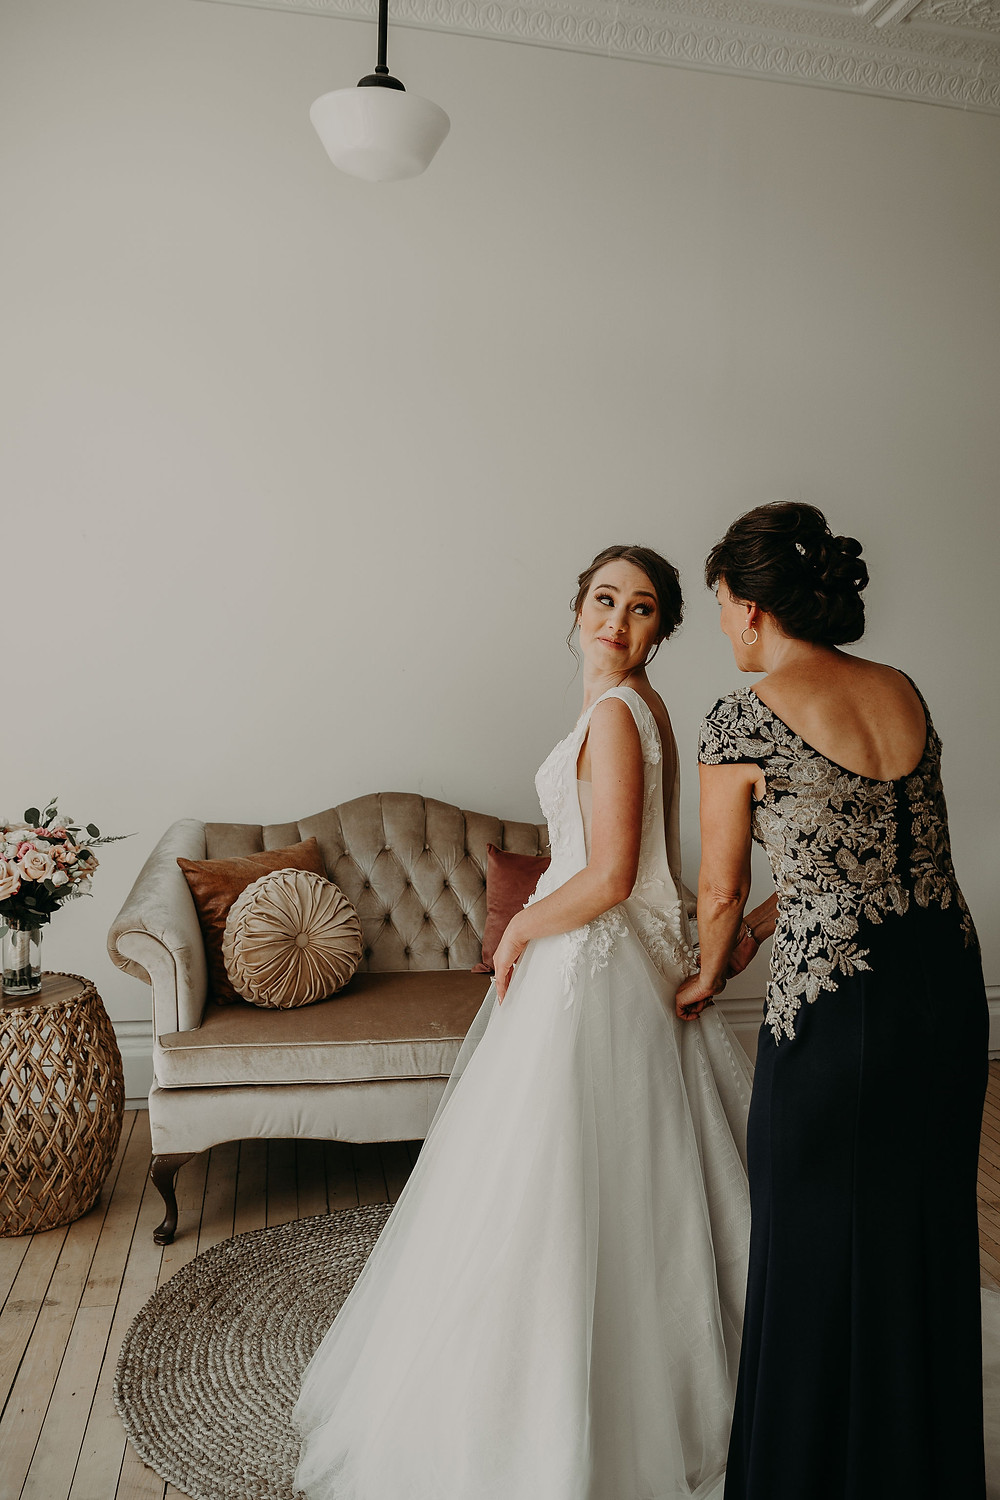 Bride getting ready: Summer Small Wedding at The Lincoln Loft